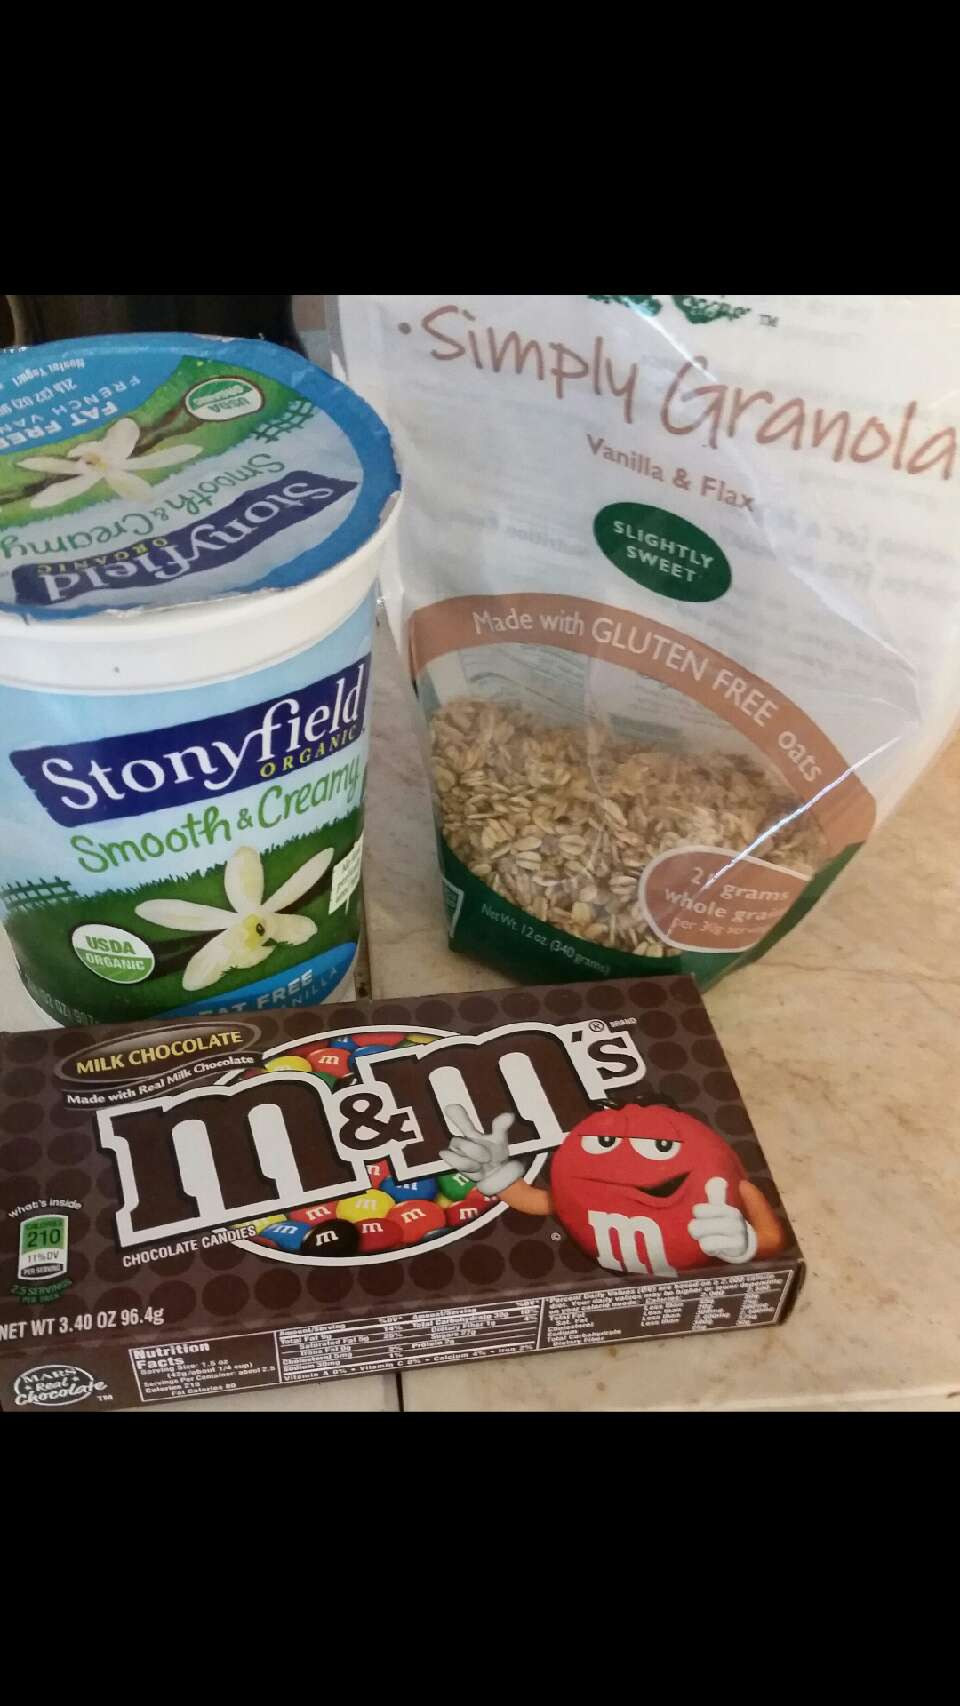 You can find these at your local Market Basket. (Believe it or not a little chocolate is actually good for you.)  I don't even like yogurt & I eat this every other morning & I love it!  Vanilla, fat free, Stony field yogurt Simply Granola, slightly sweet vanilla flax Regular (or peanut) m&m's